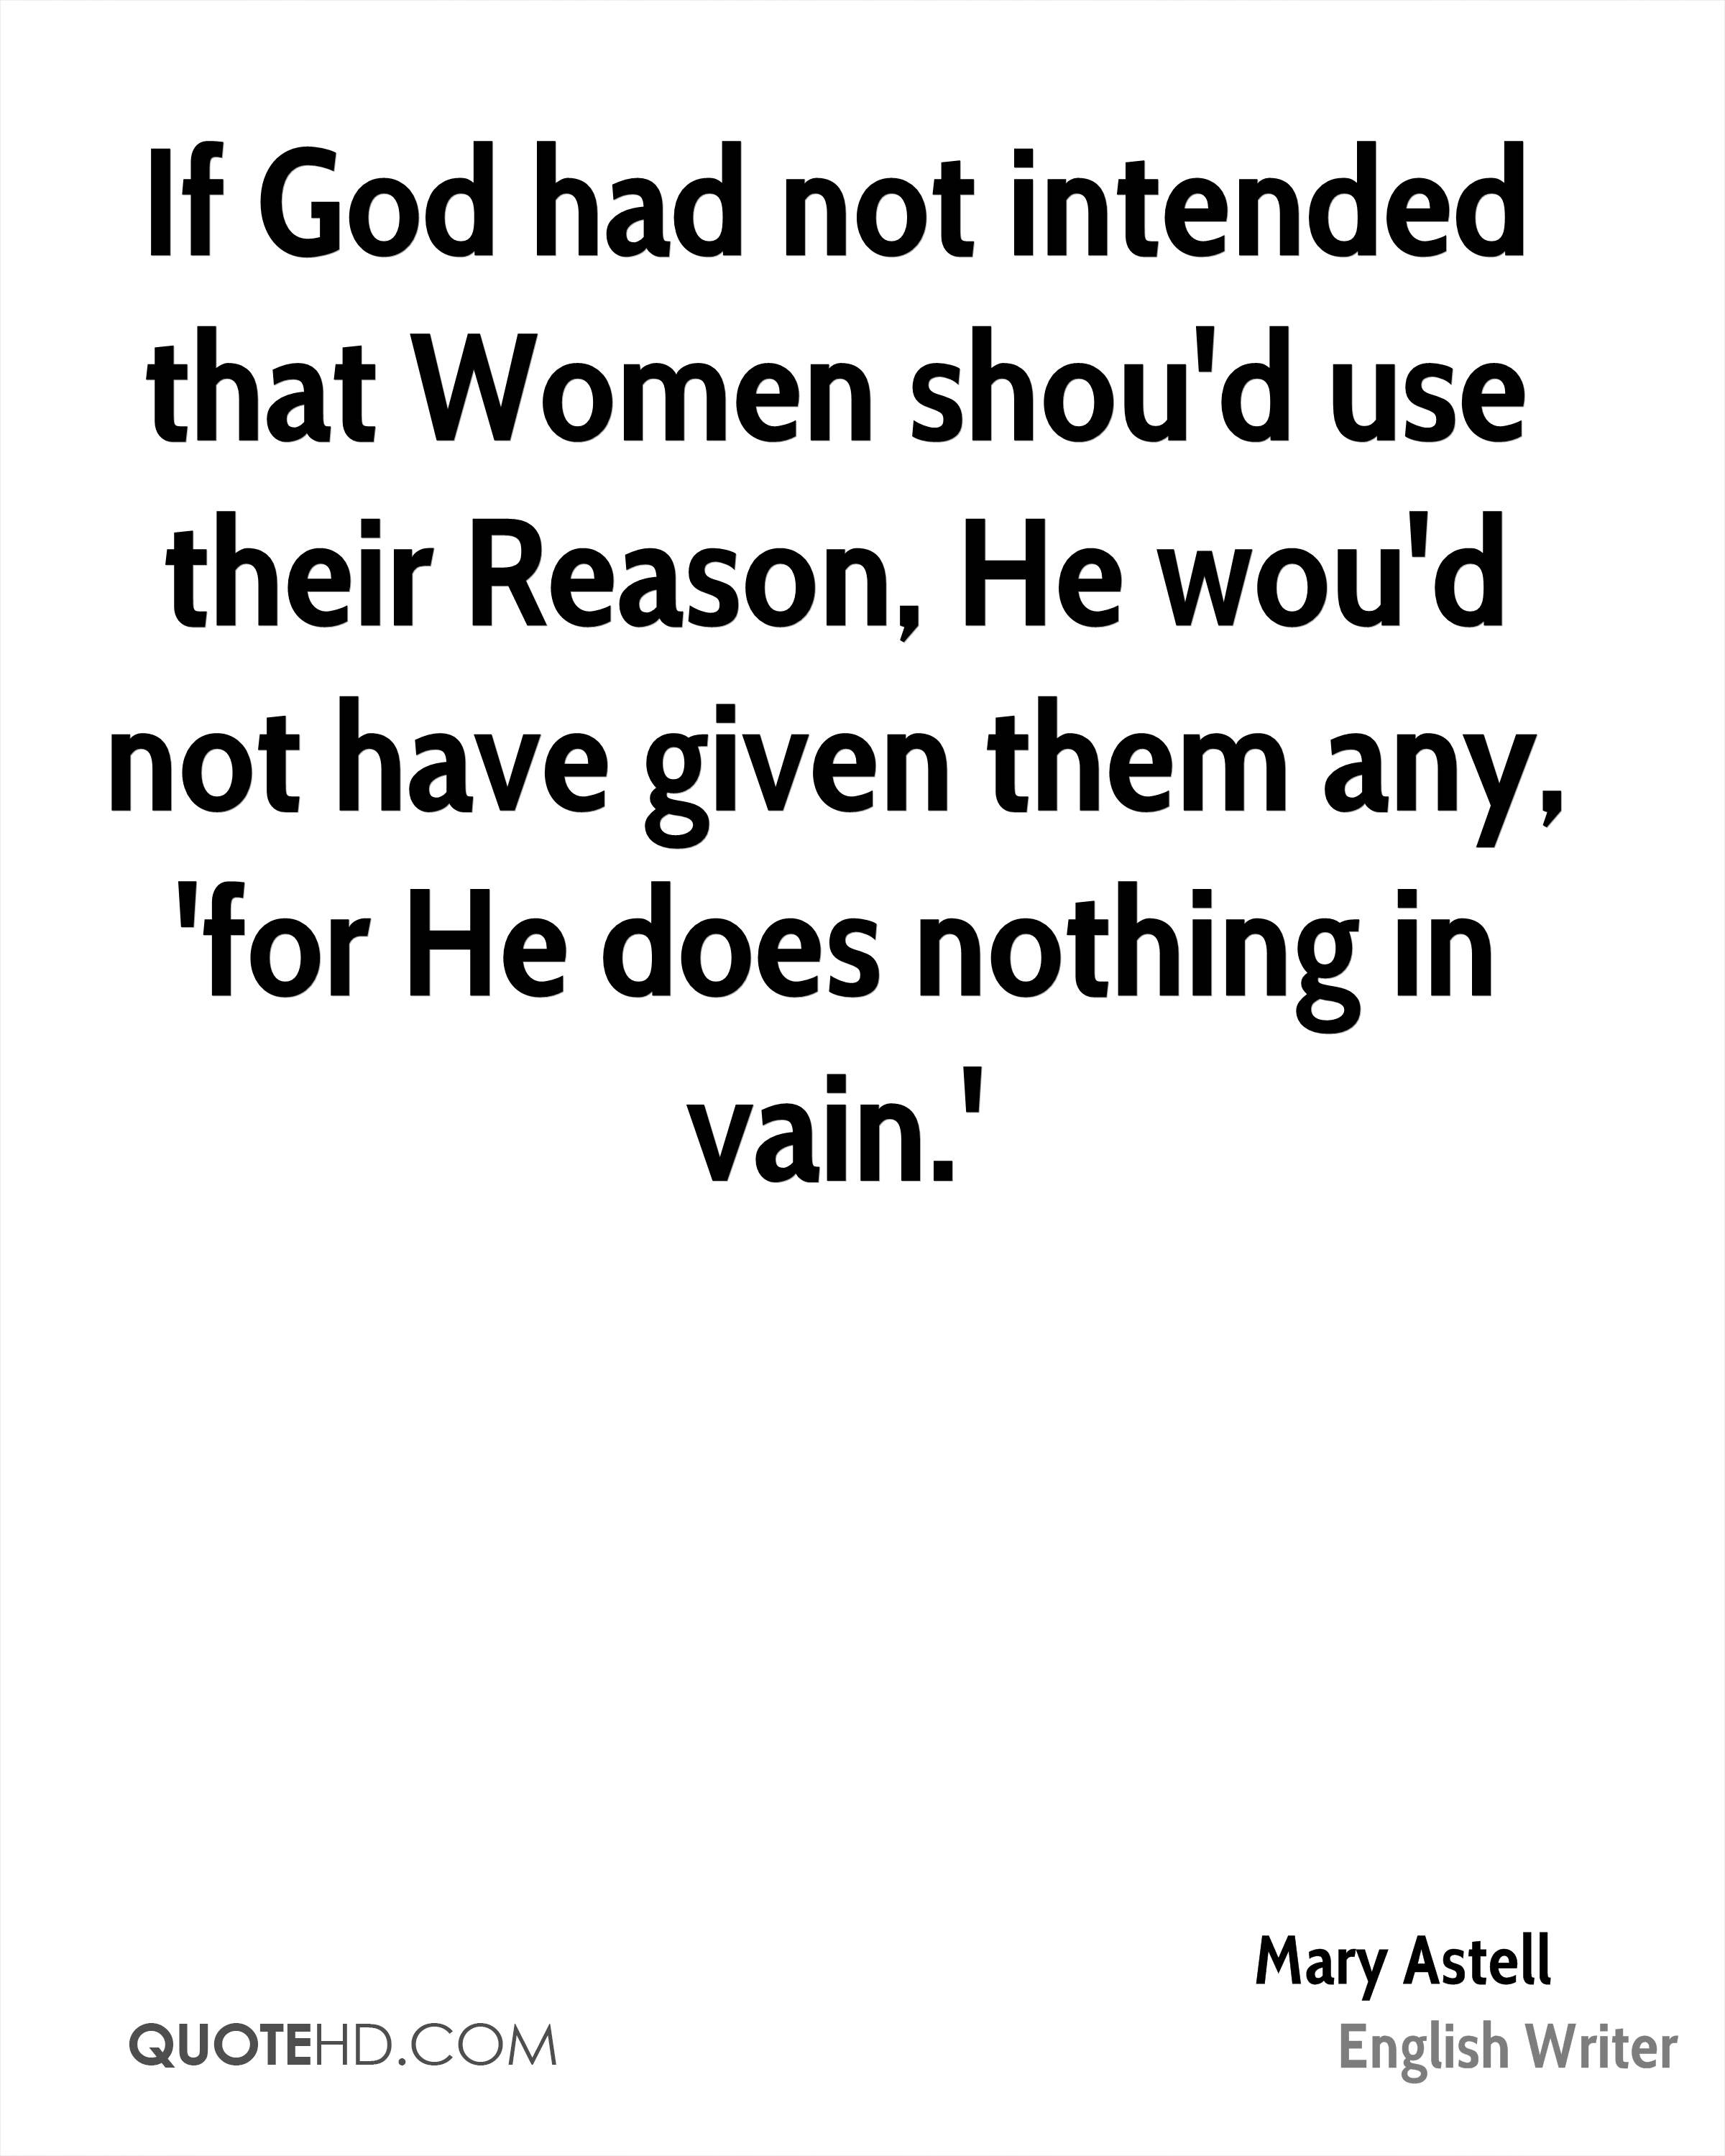 If God had not intended that Women shou'd use their Reason, He wou'd not have given them any, 'for He does nothing in vain.'